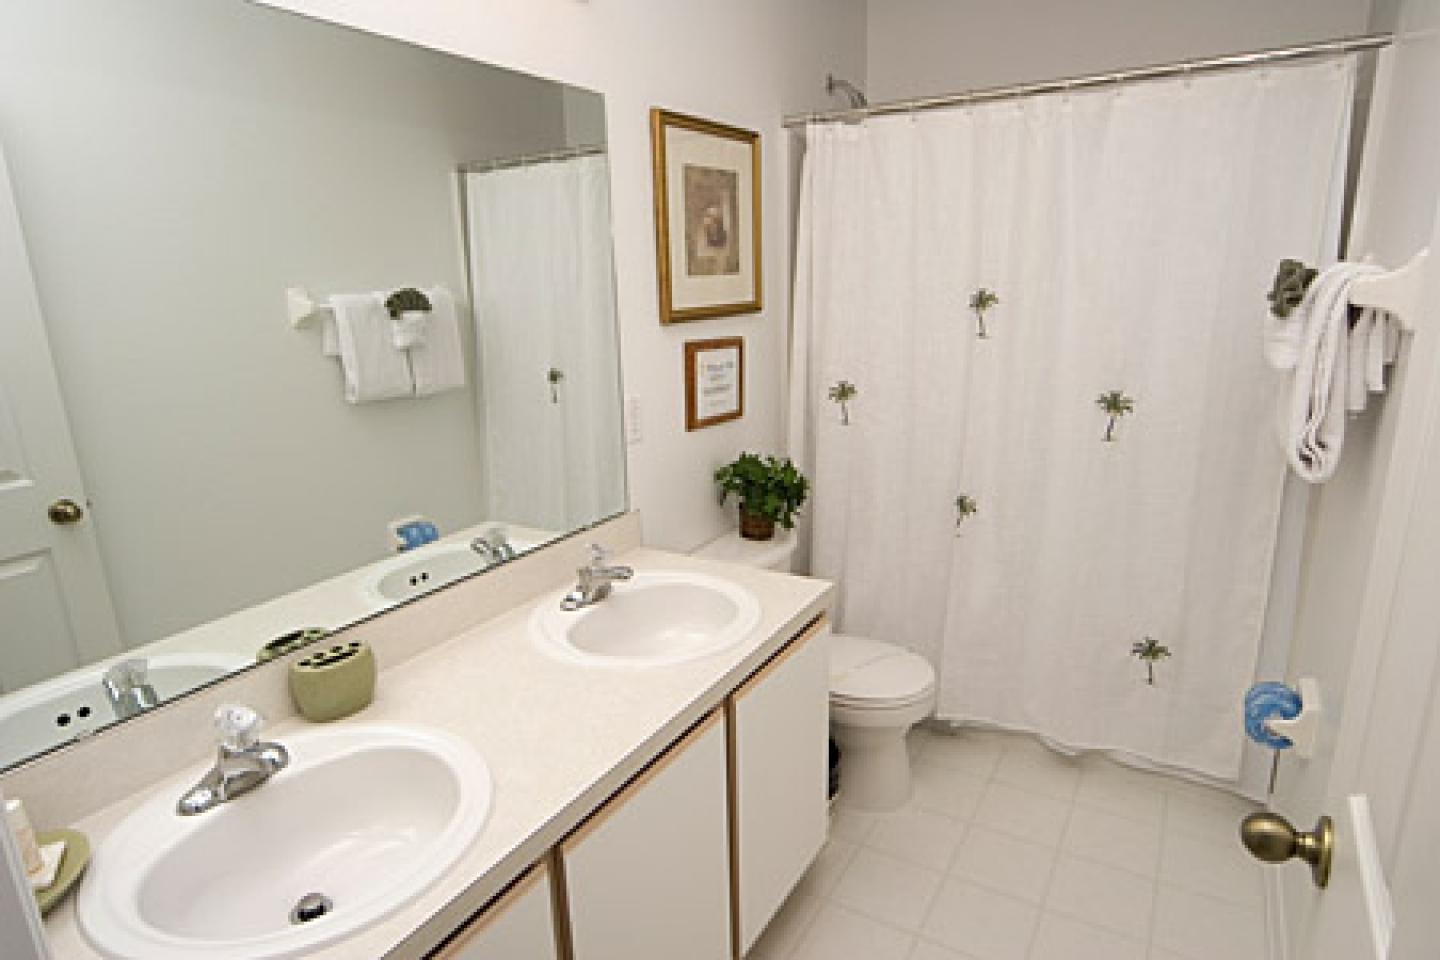 Some of the best small bathroom designs that work well for Small bathroom ideas images